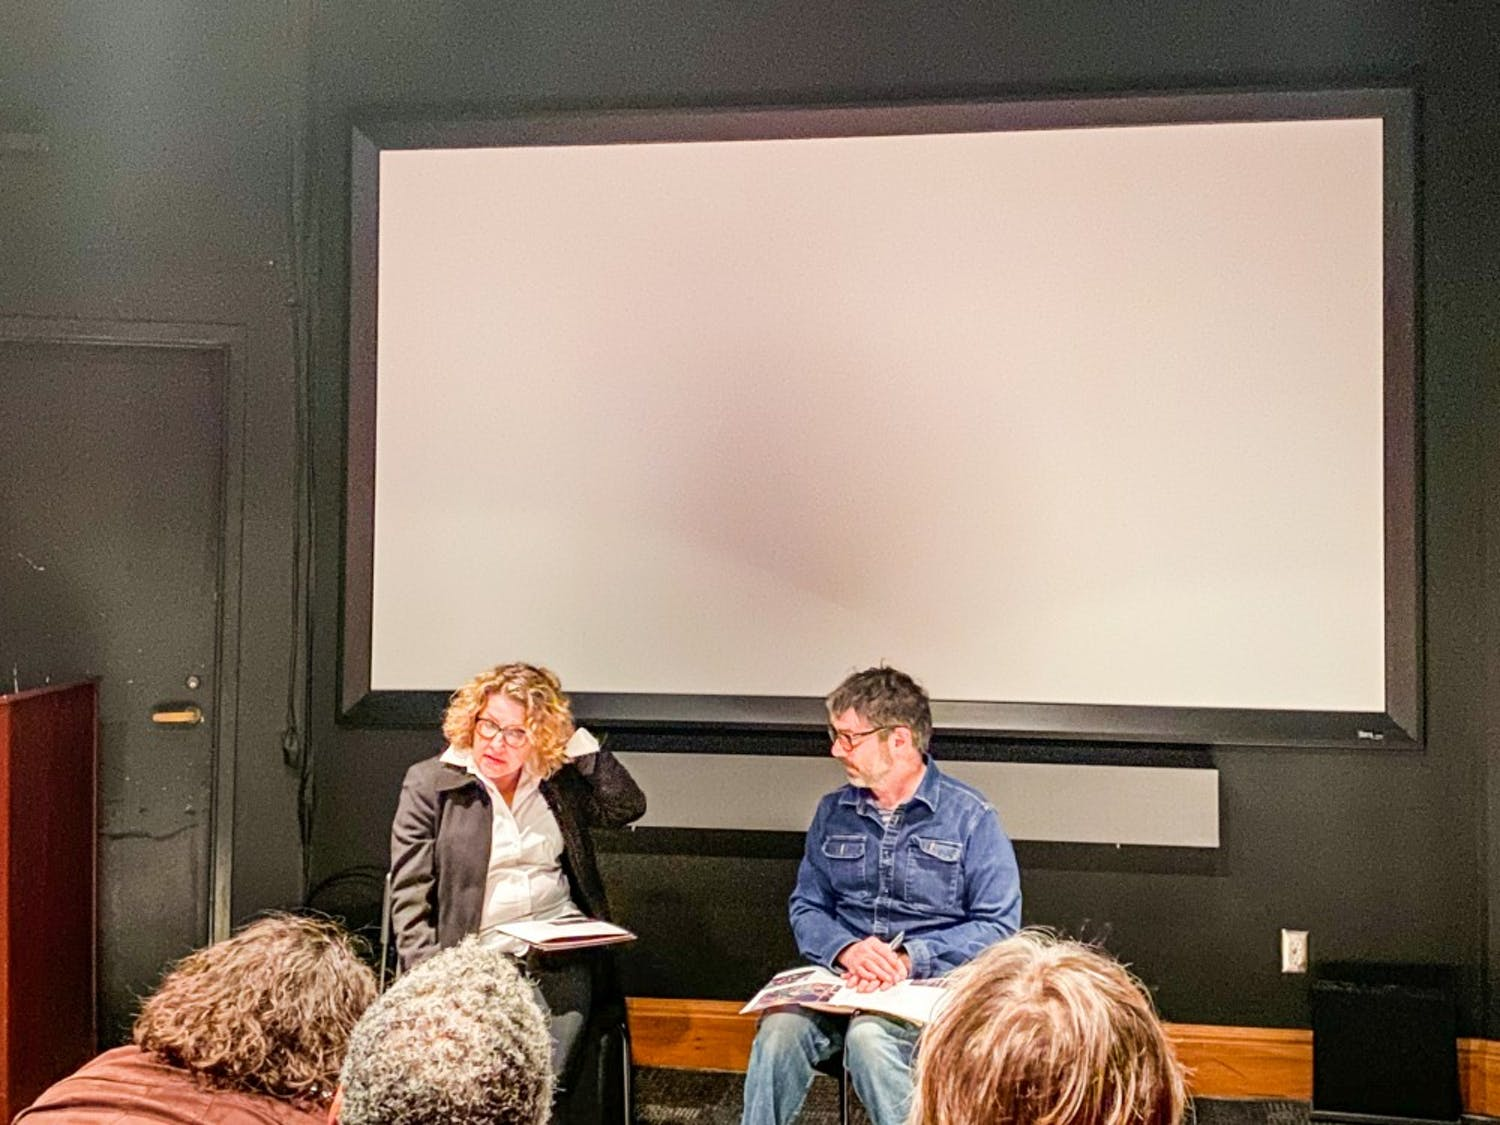 Patricia Zimmermann and Jason Livingston answering questions after the screening.